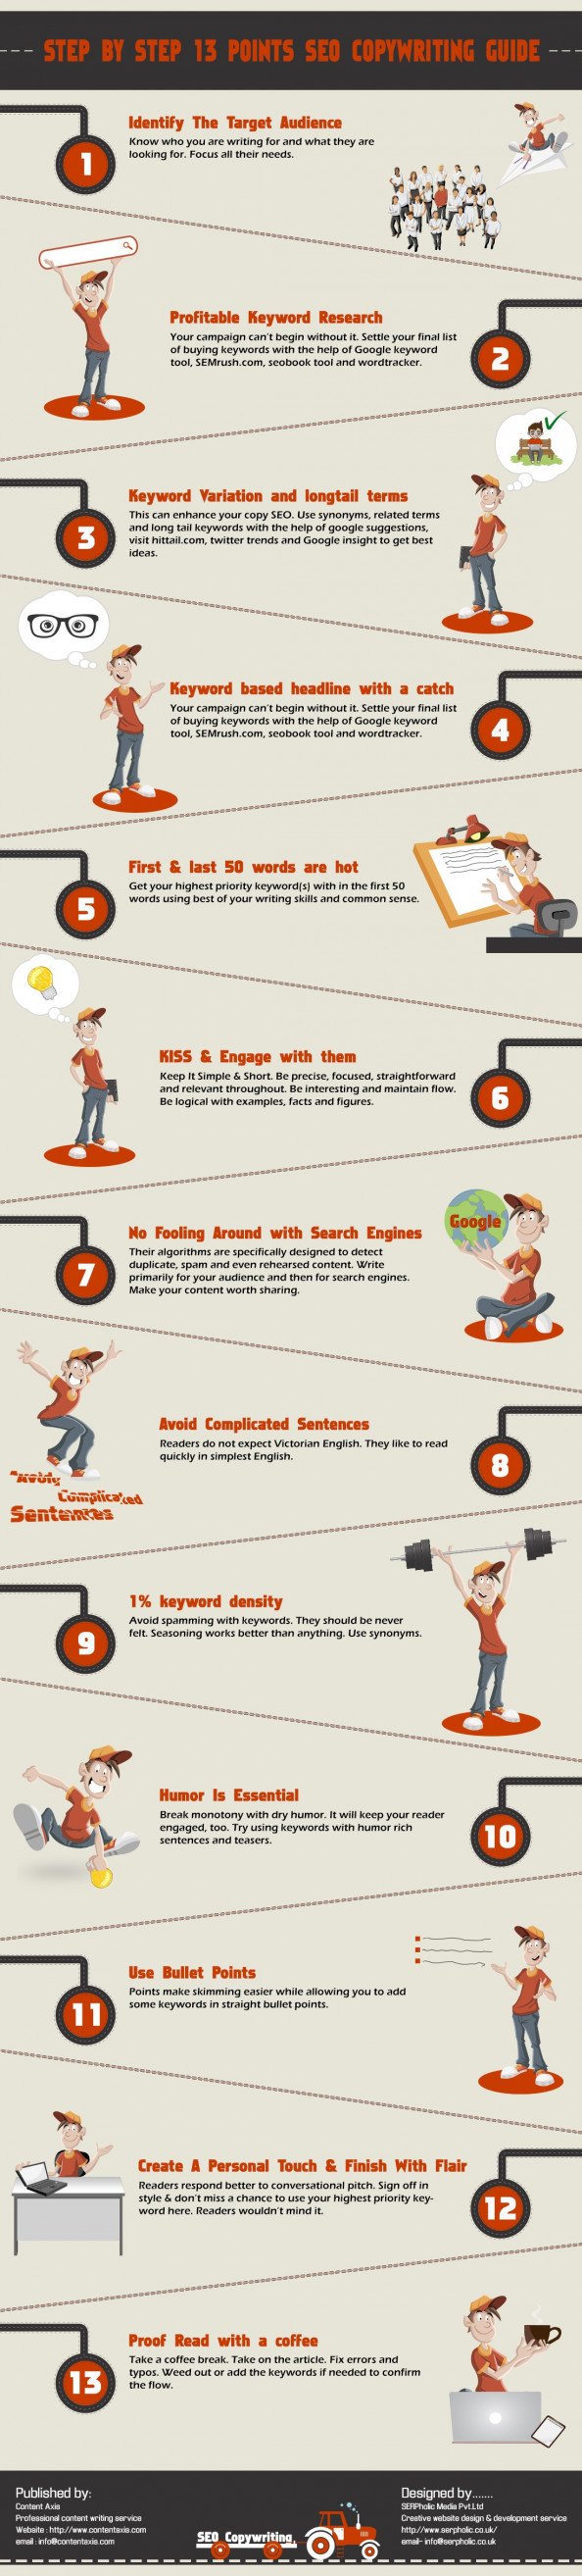 Step by Step 13 Points SEO Copywriting Guide Infographic : A Short Review To SEO Factors